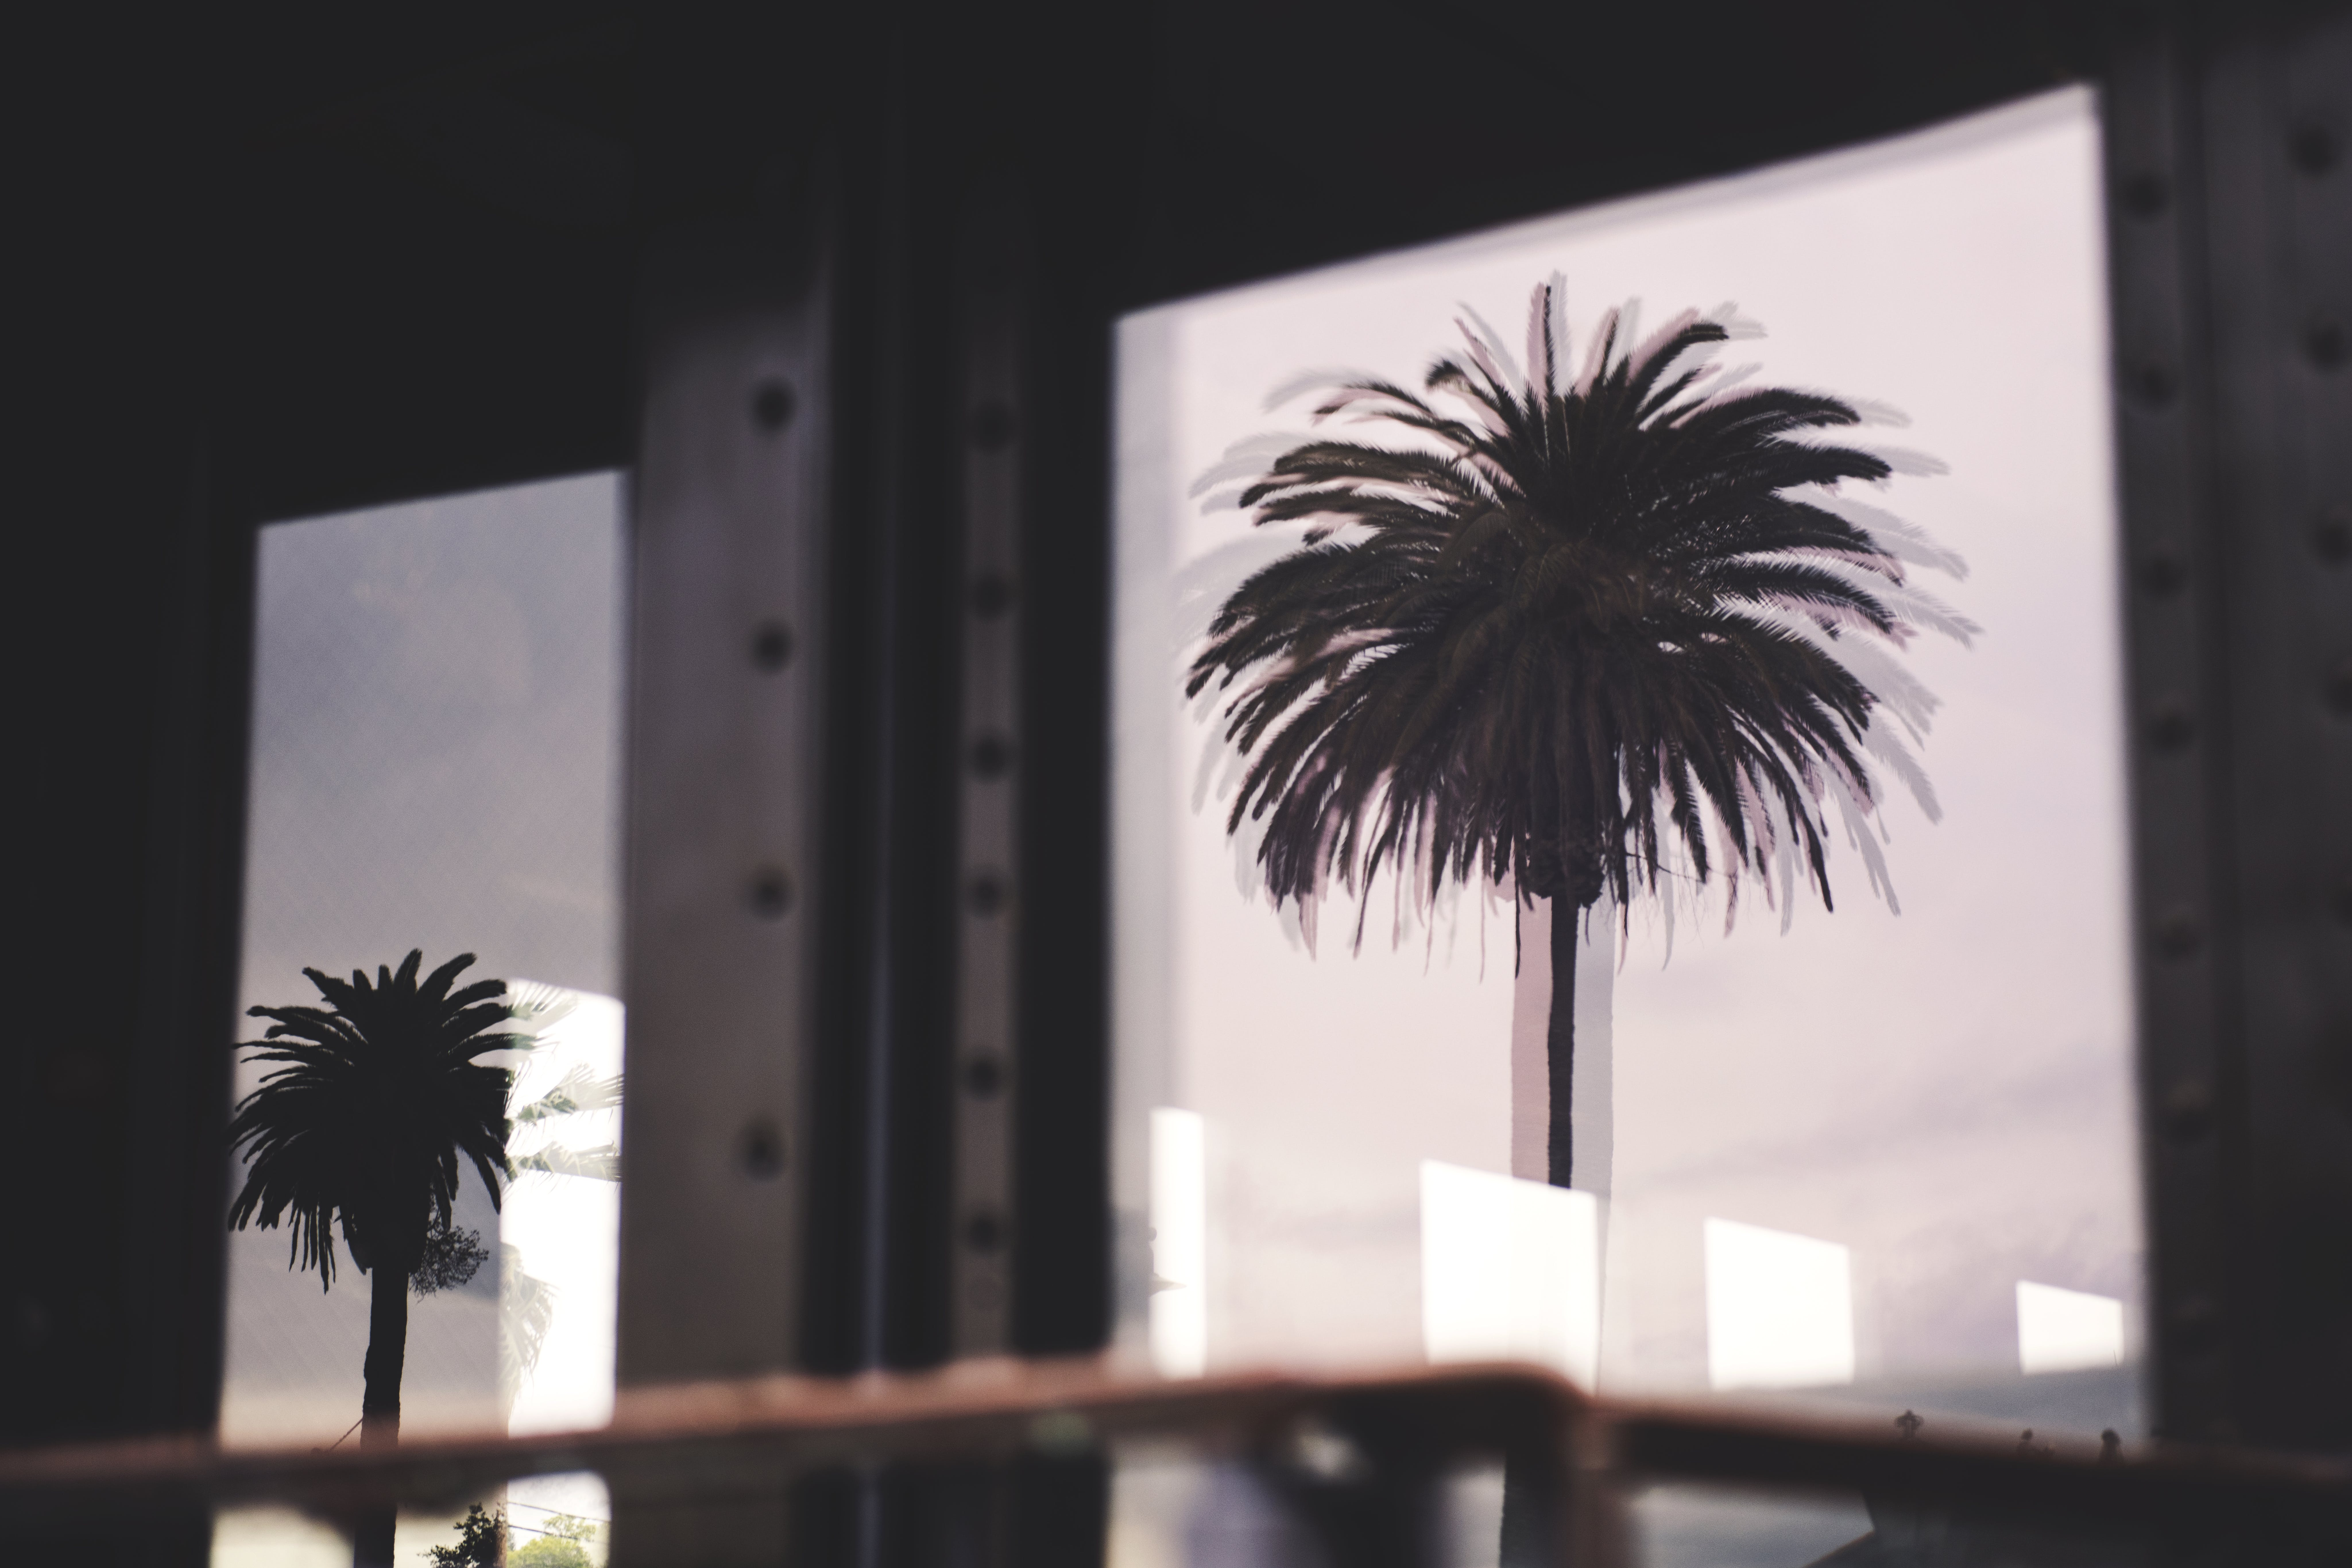 Silhouette Photo of Two Palm Trees